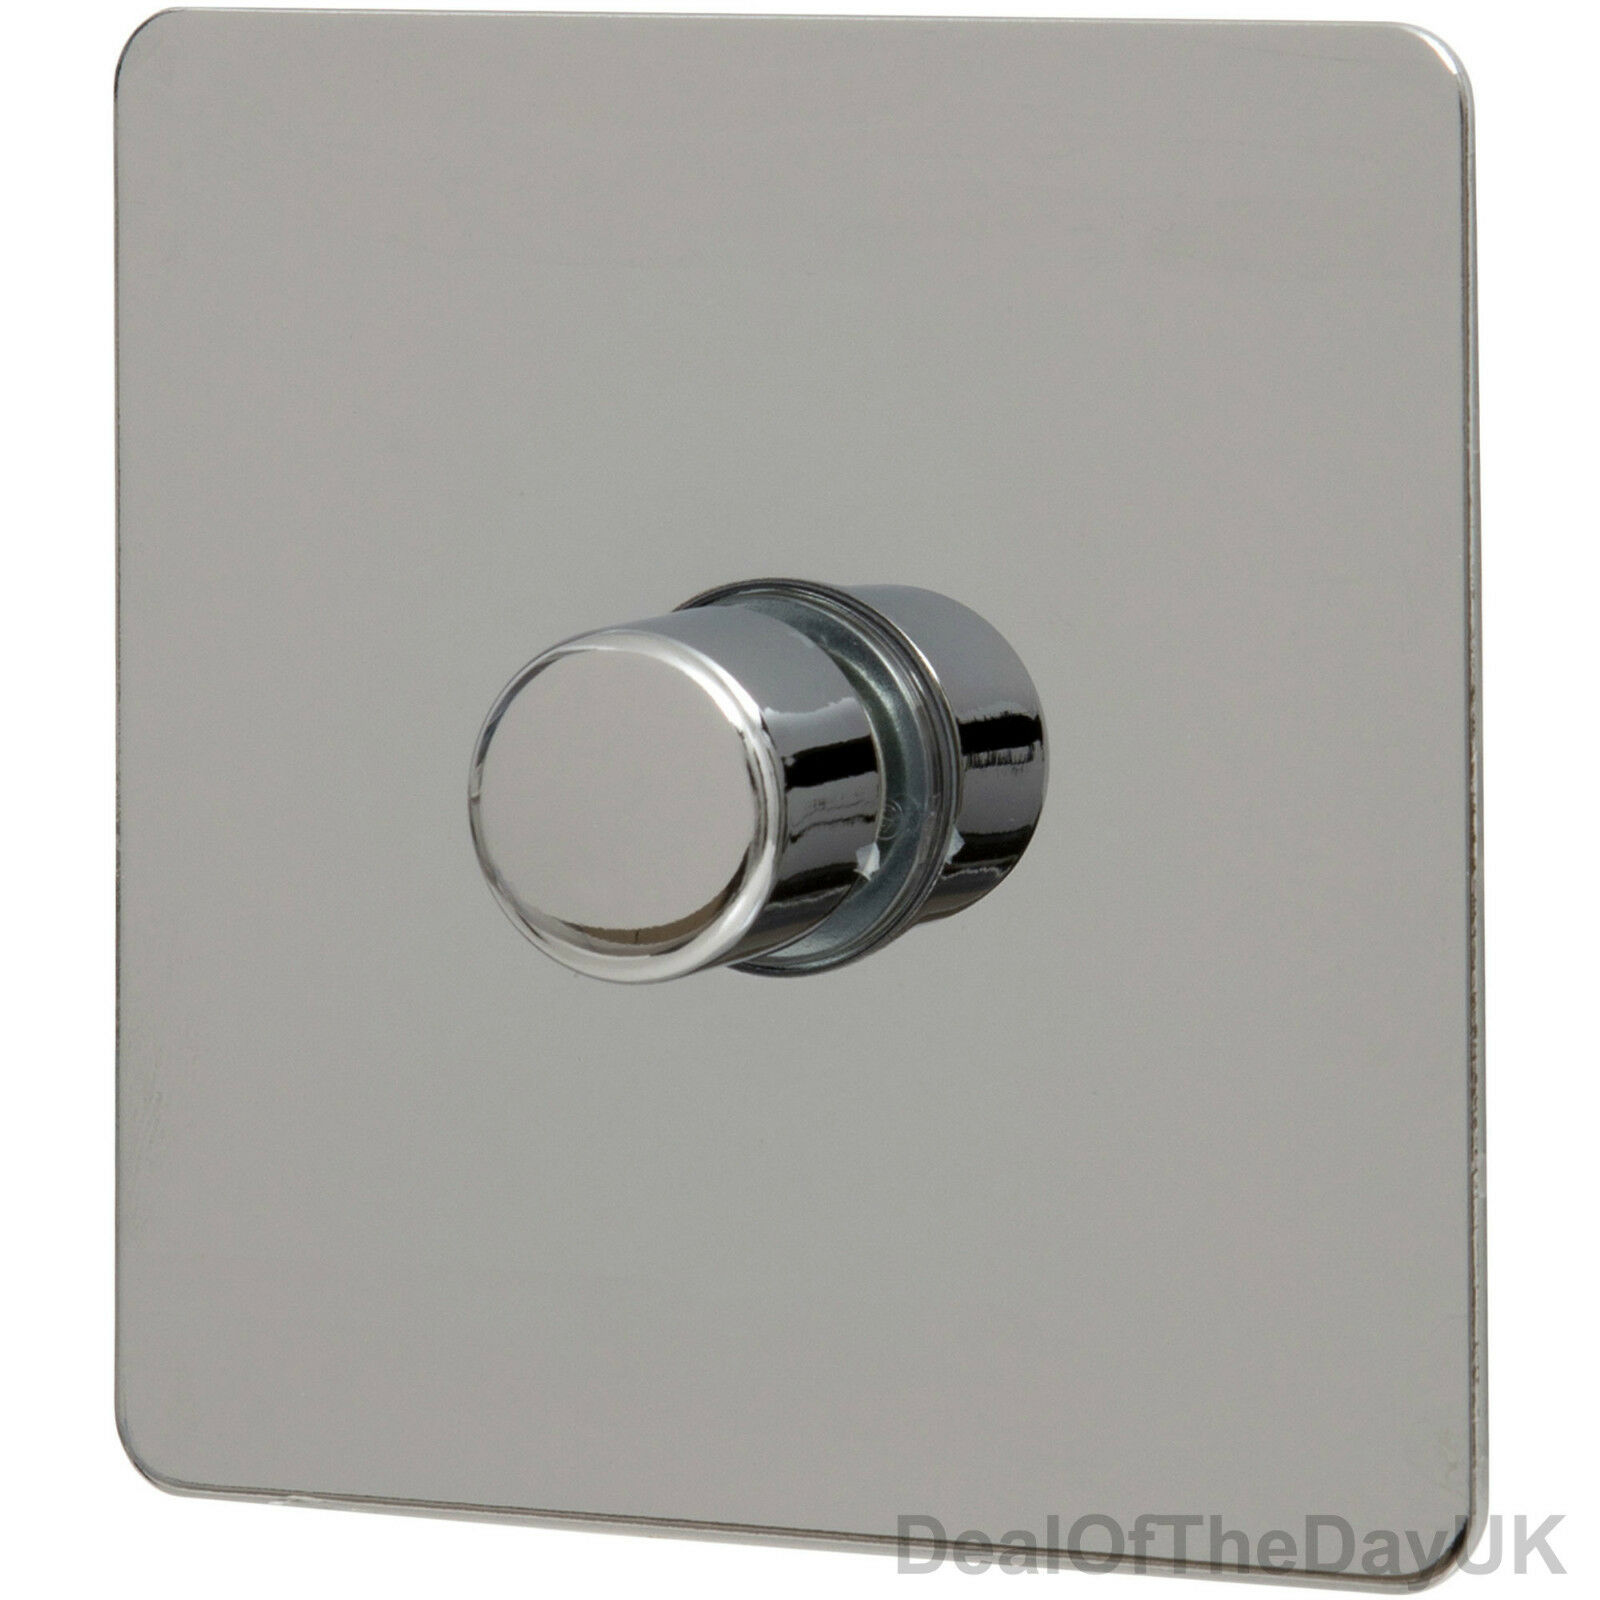 dimmer switch chrome single double triple 1 3 gang 2 way push on off flat plate. Black Bedroom Furniture Sets. Home Design Ideas